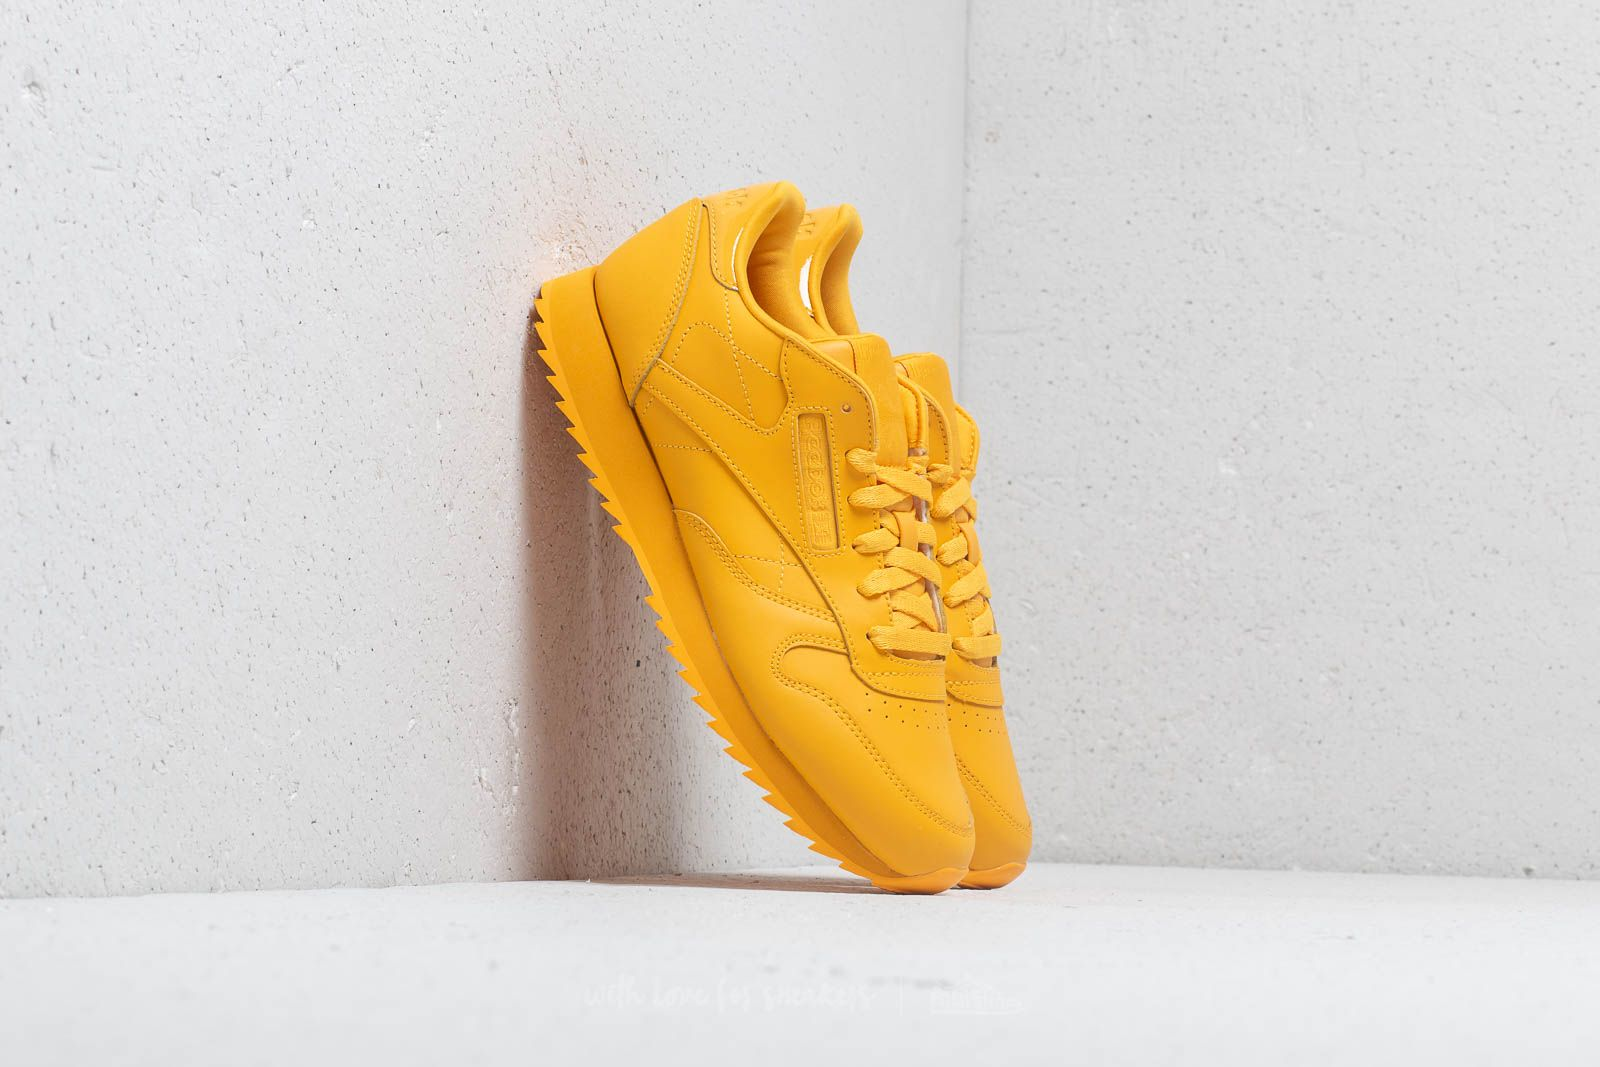 Reebok CL Lthr Ripple Fierce Gold | Footshop